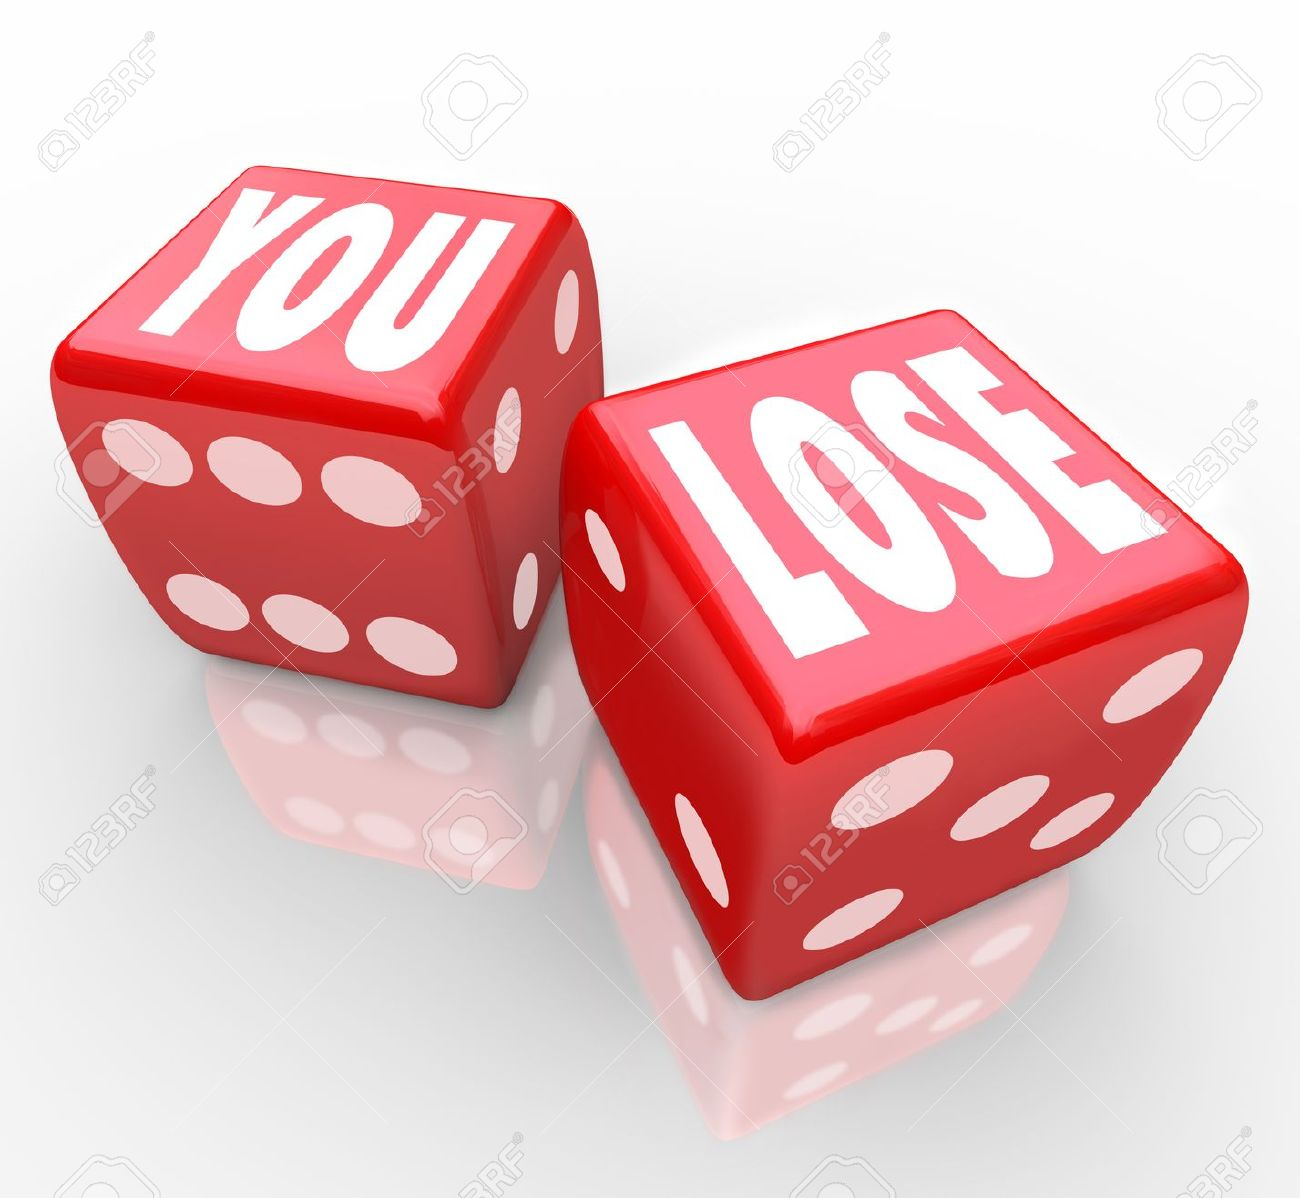 lose a game clipart #14